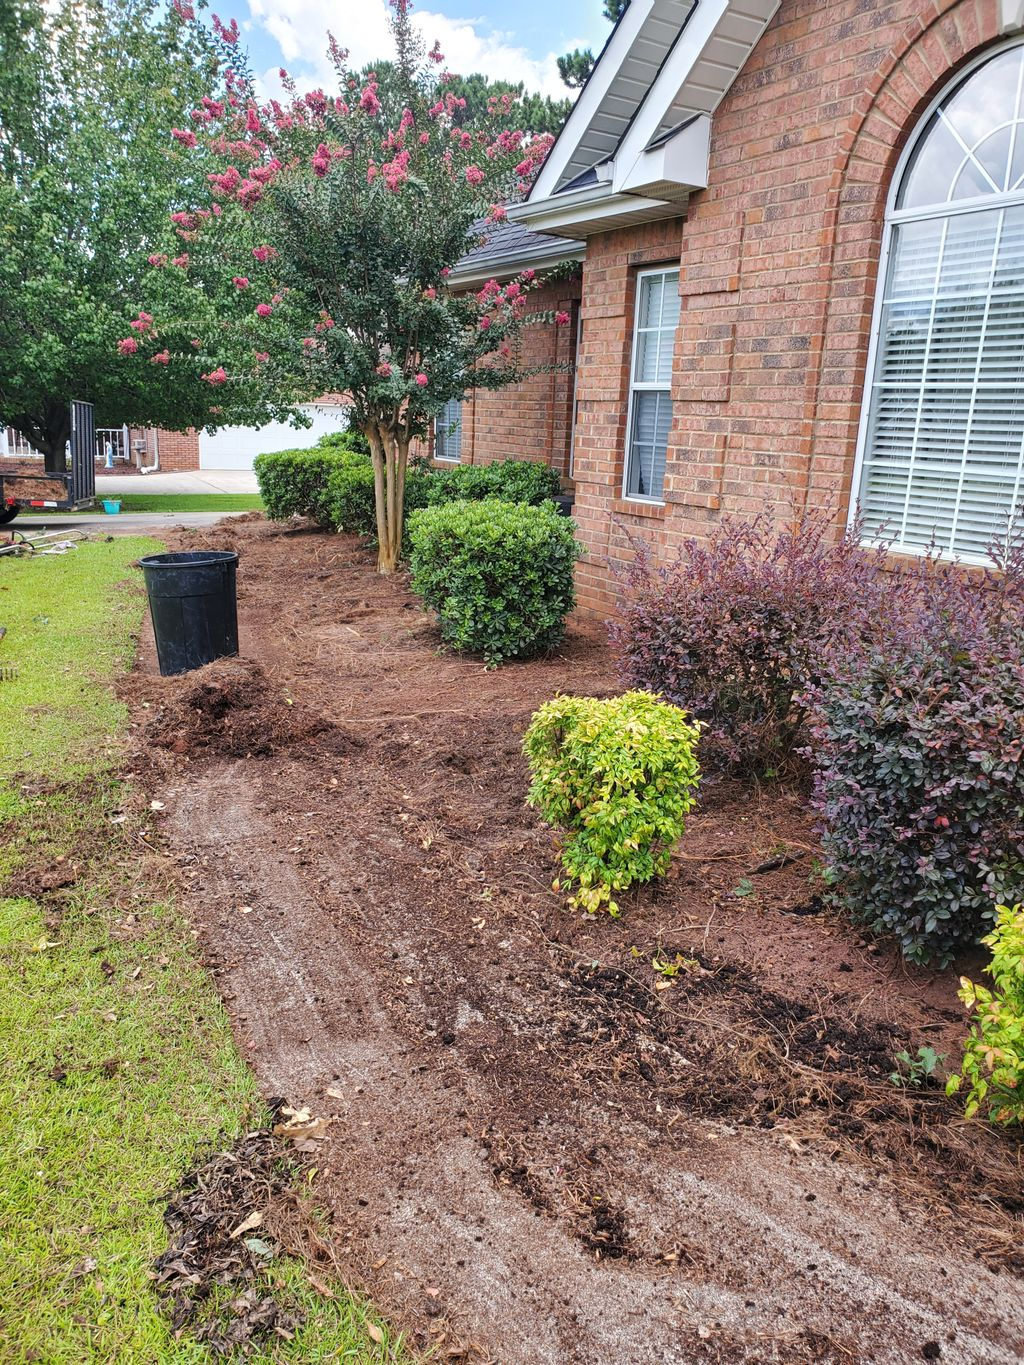 Plant Removal - Landscaping lawn Beds Design change